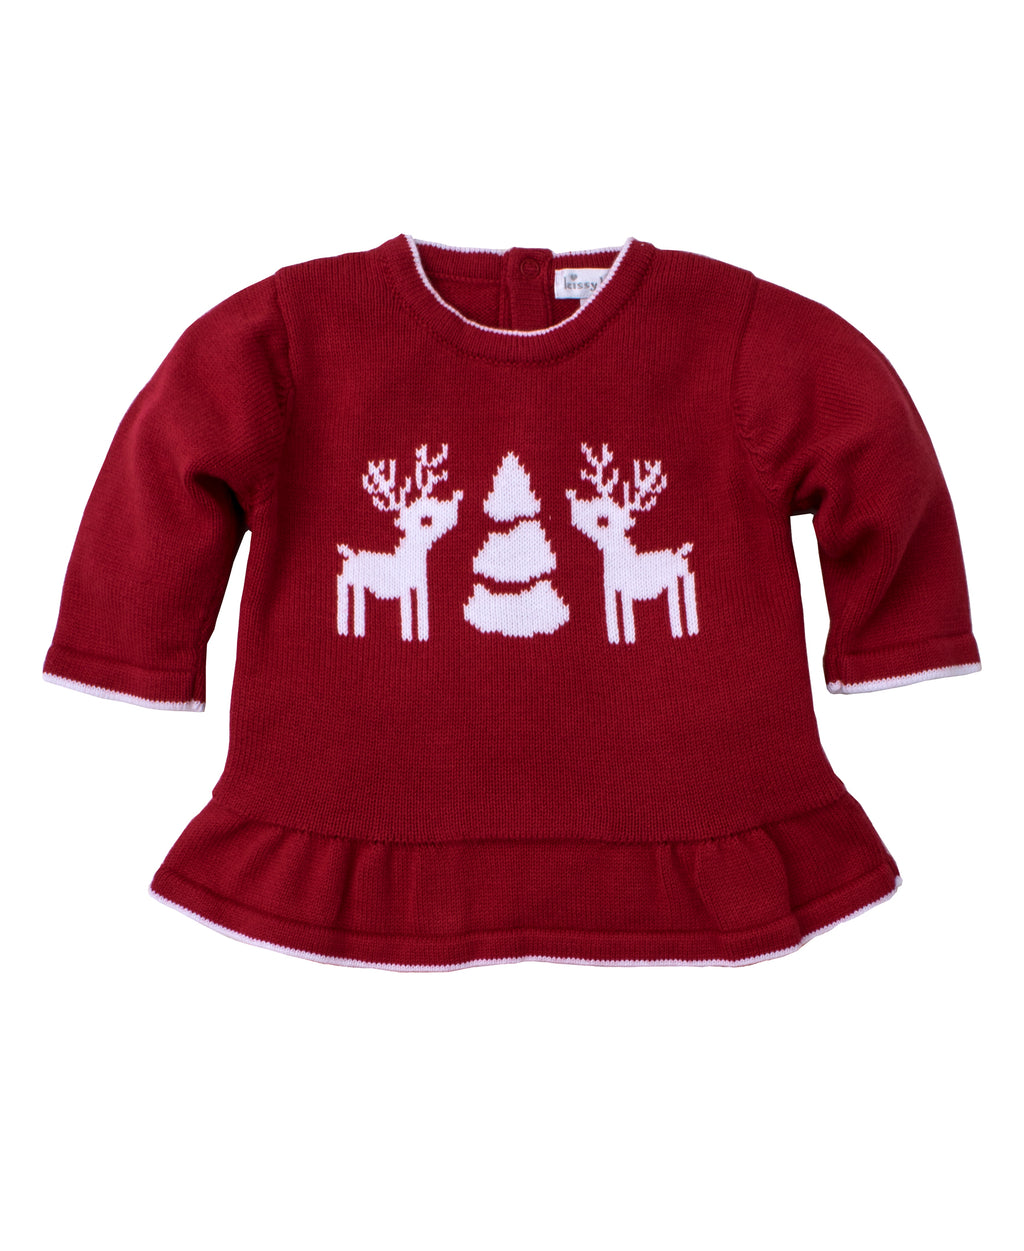 Red Reindeer Knits Sweater